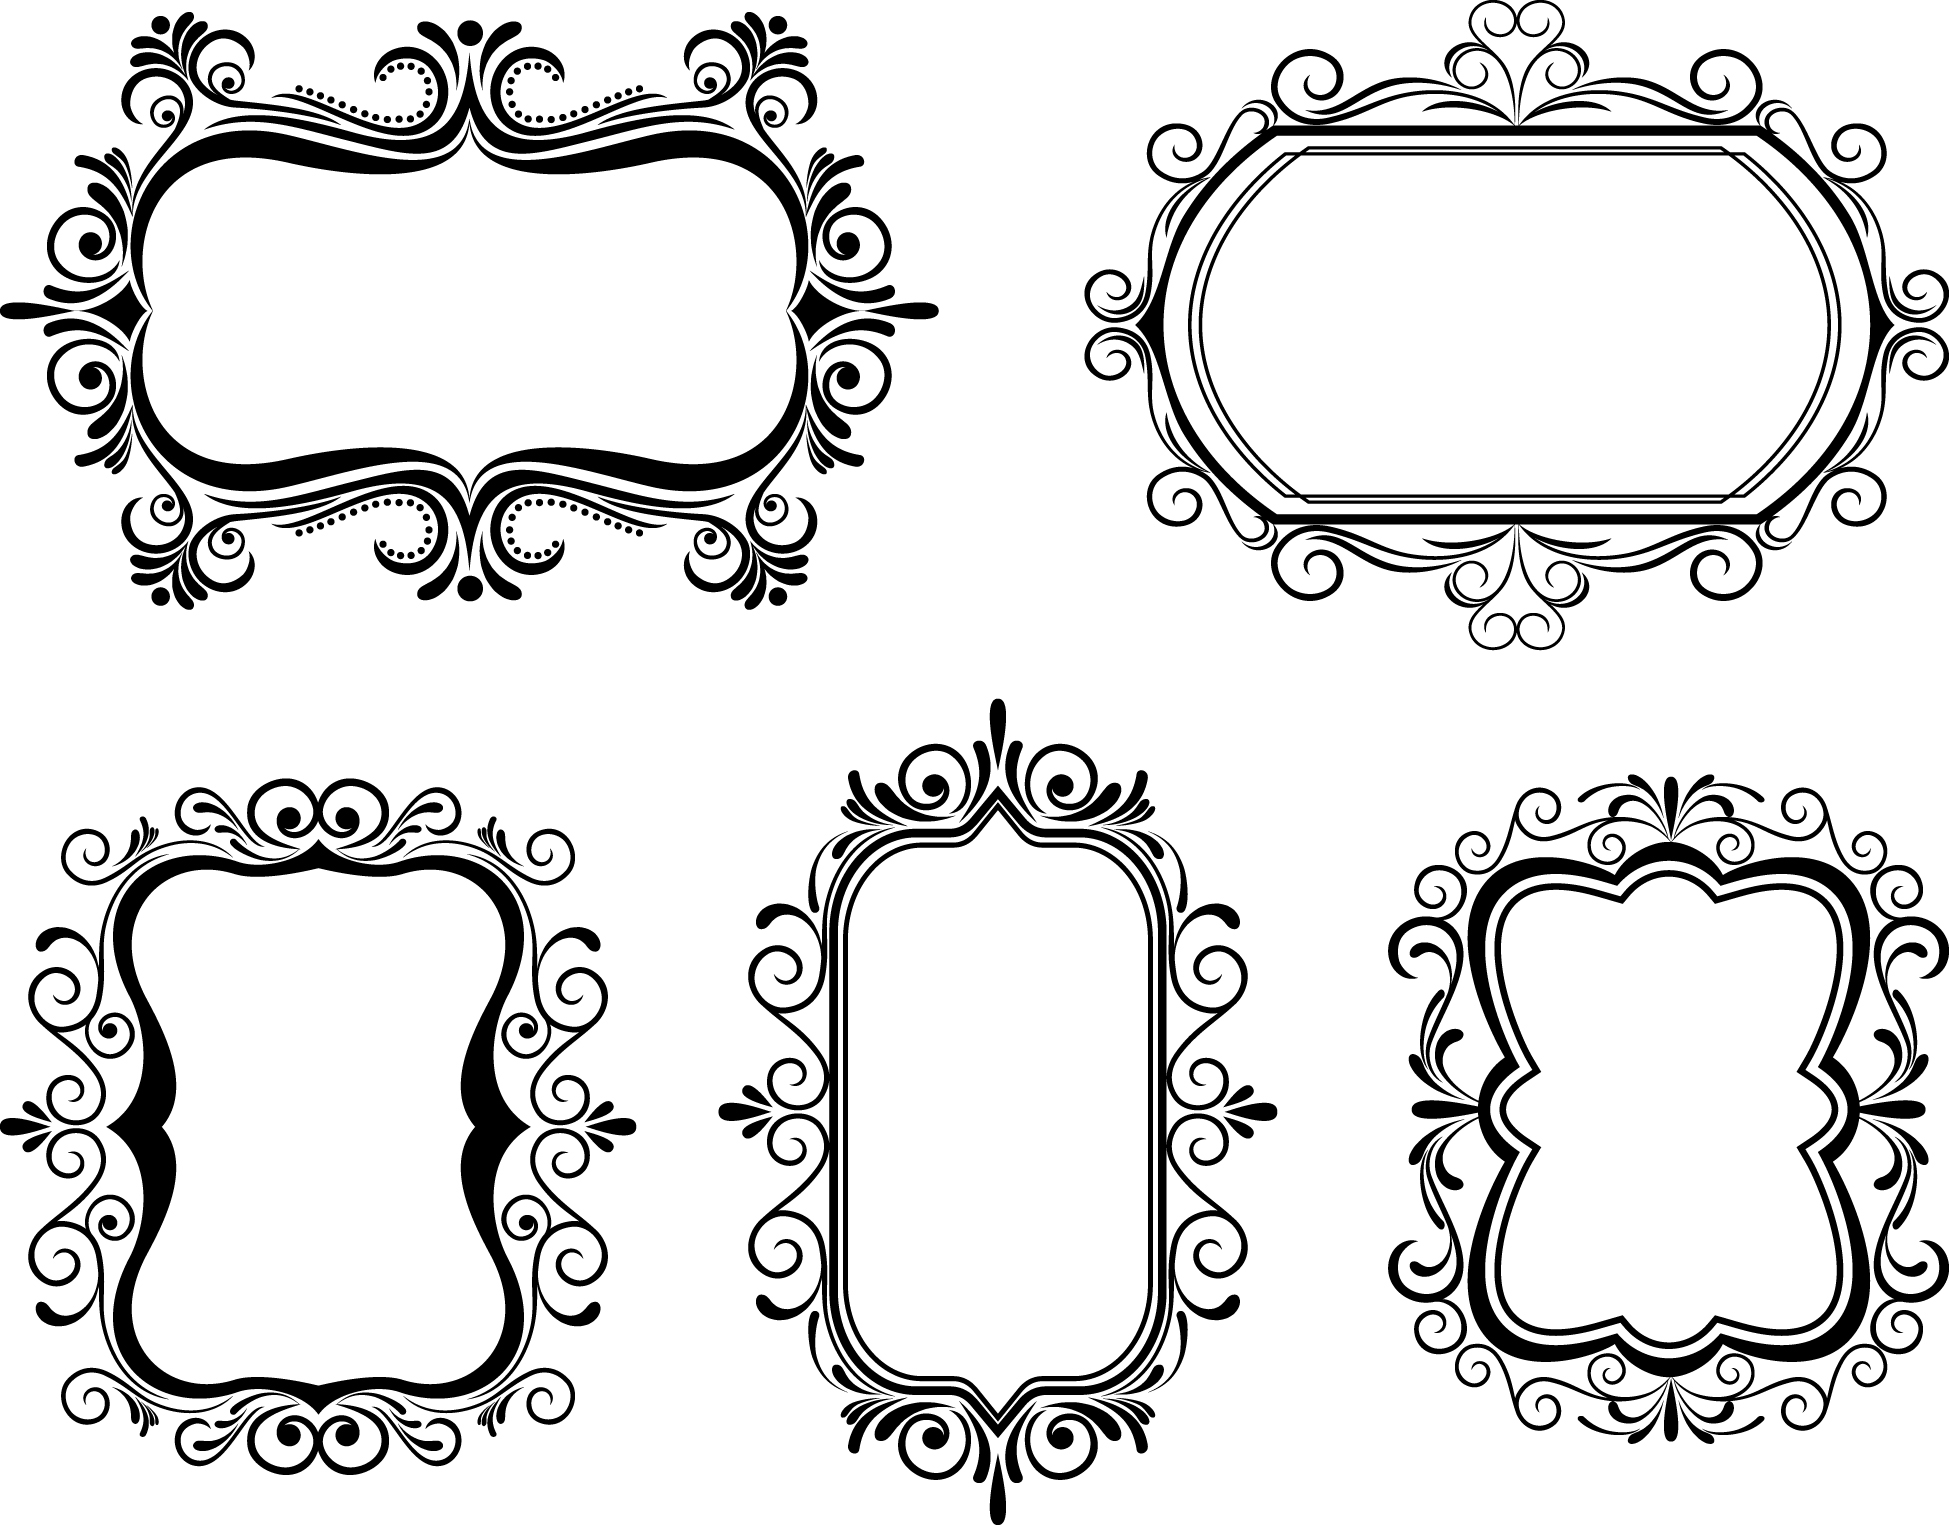 Vector frame clipart transparent download Free Free Vector Borders, Download Free Clip Art, Free Clip Art on ... transparent download